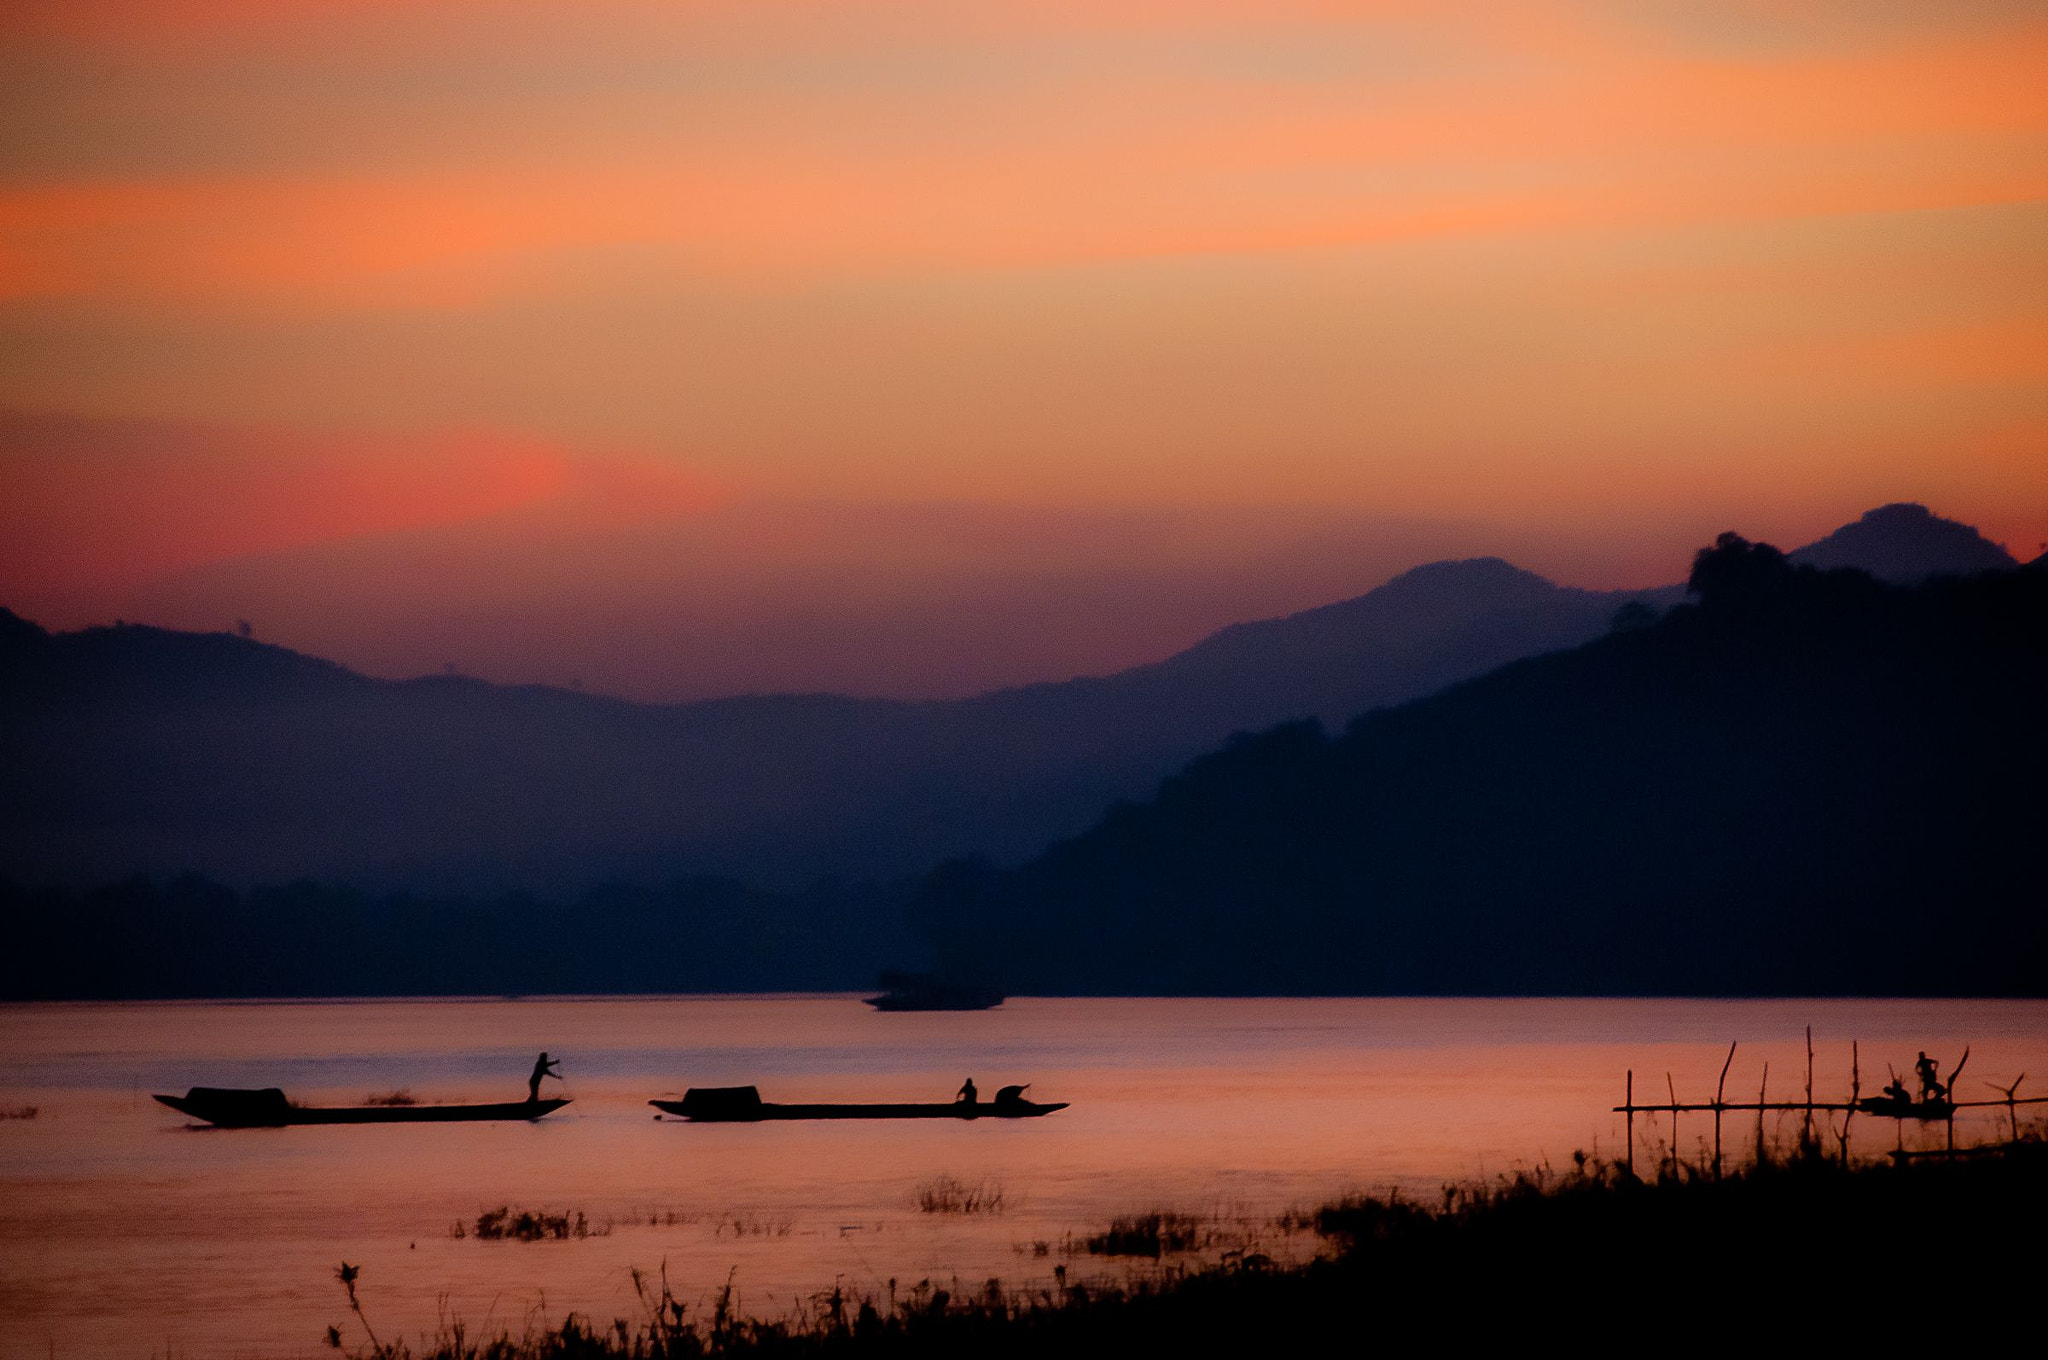 Photograph Mekong River Sunset by Frank Alvaro on 500px